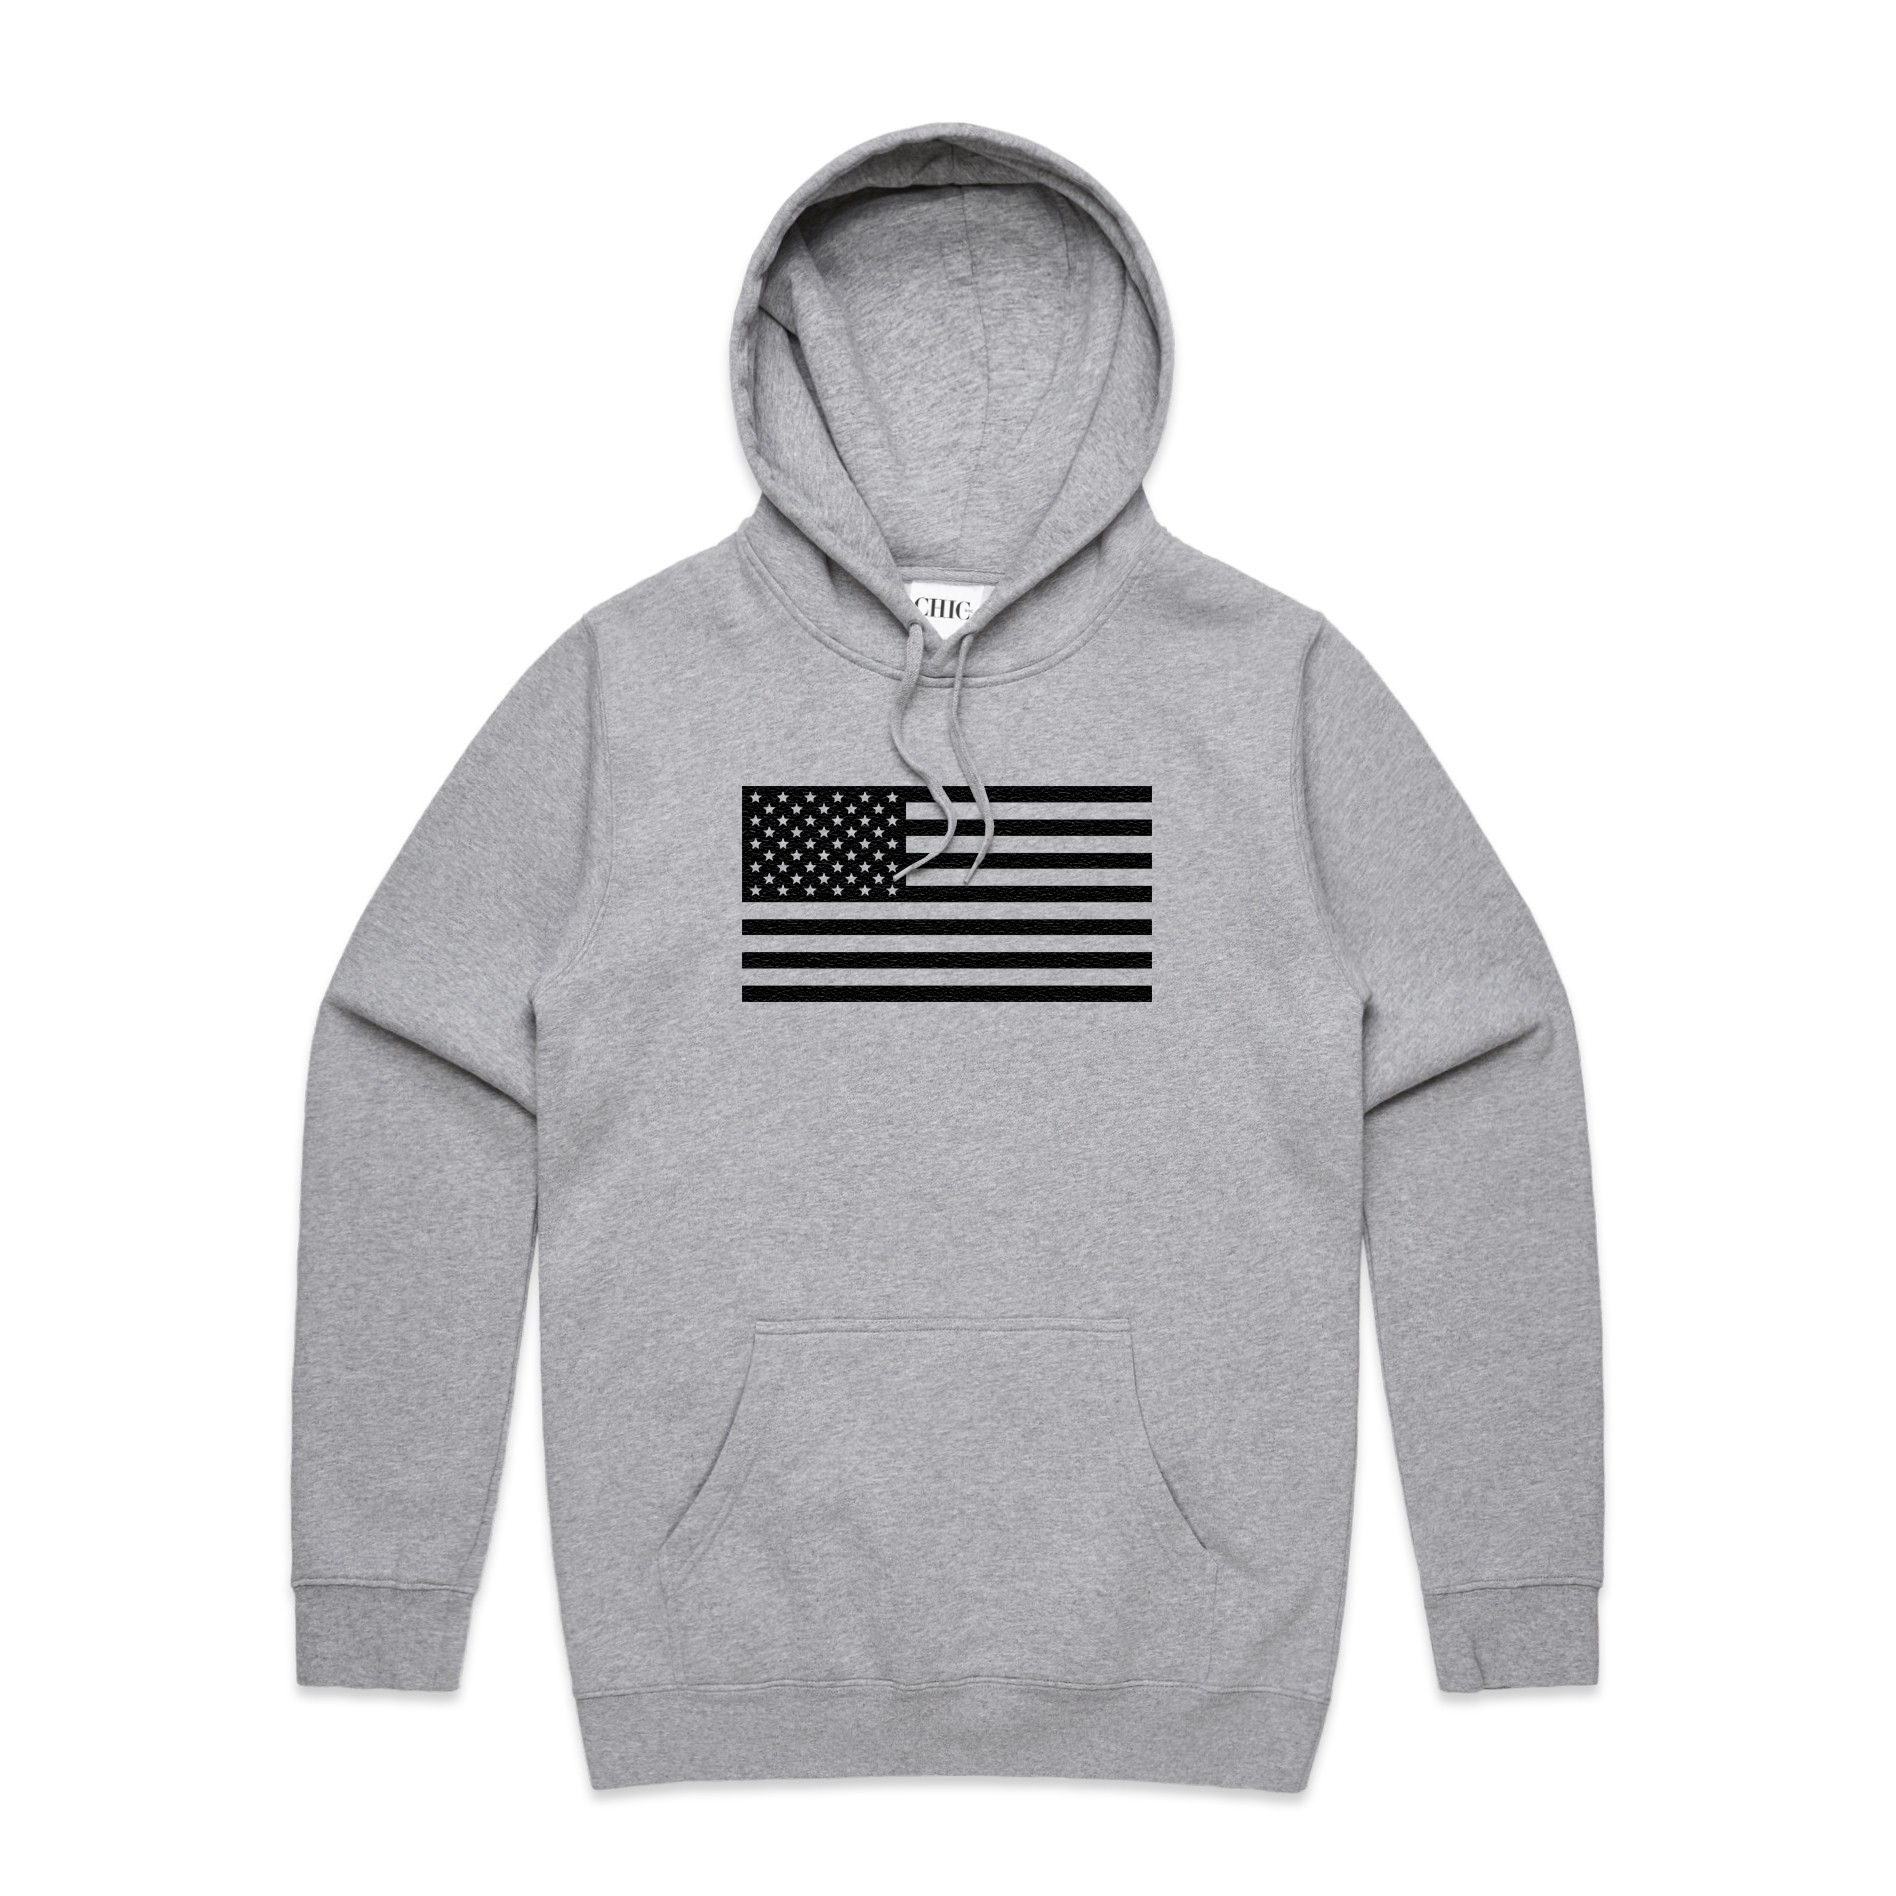 Gray Basic Hoodie with USA Flag